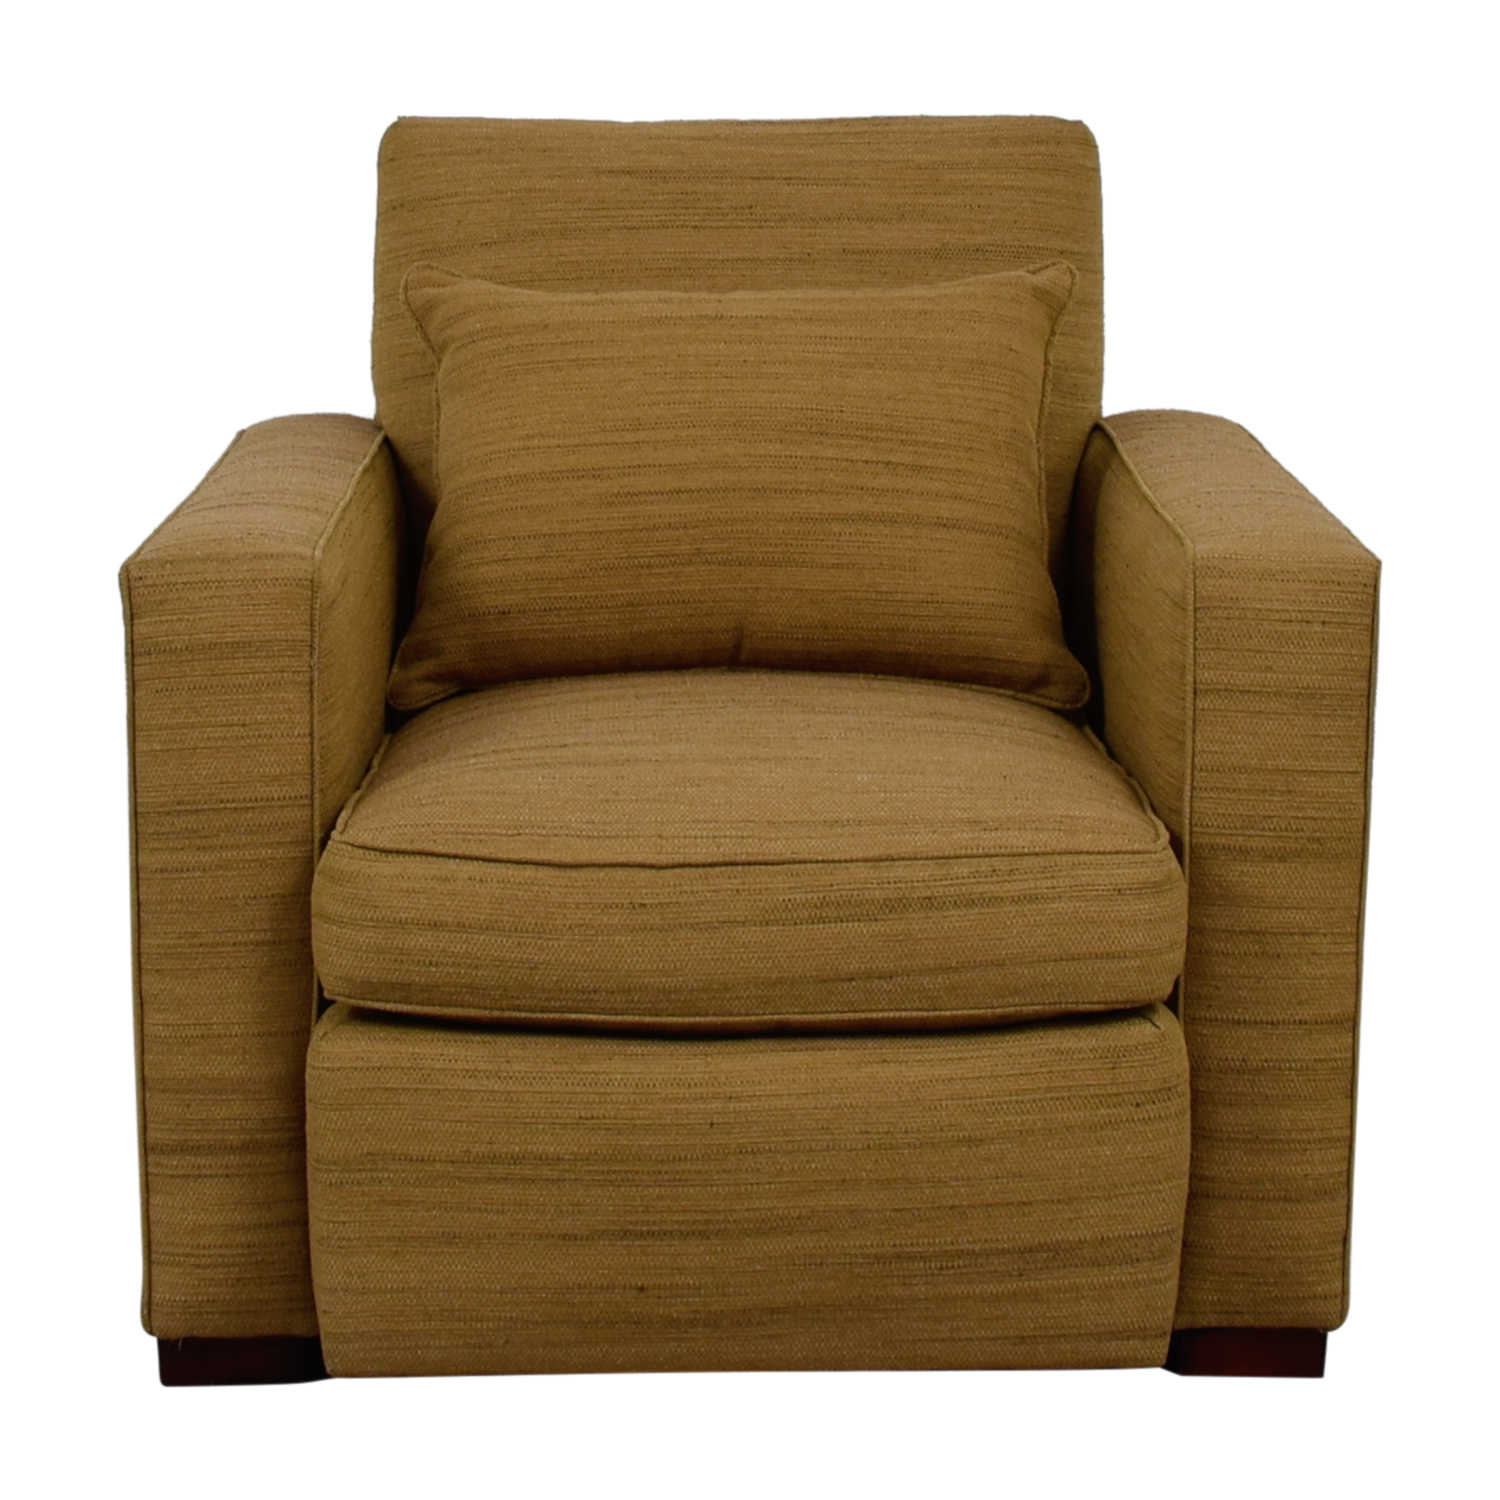 shop Hickory Chair Hickory Chair Classic Modern Club Chair online